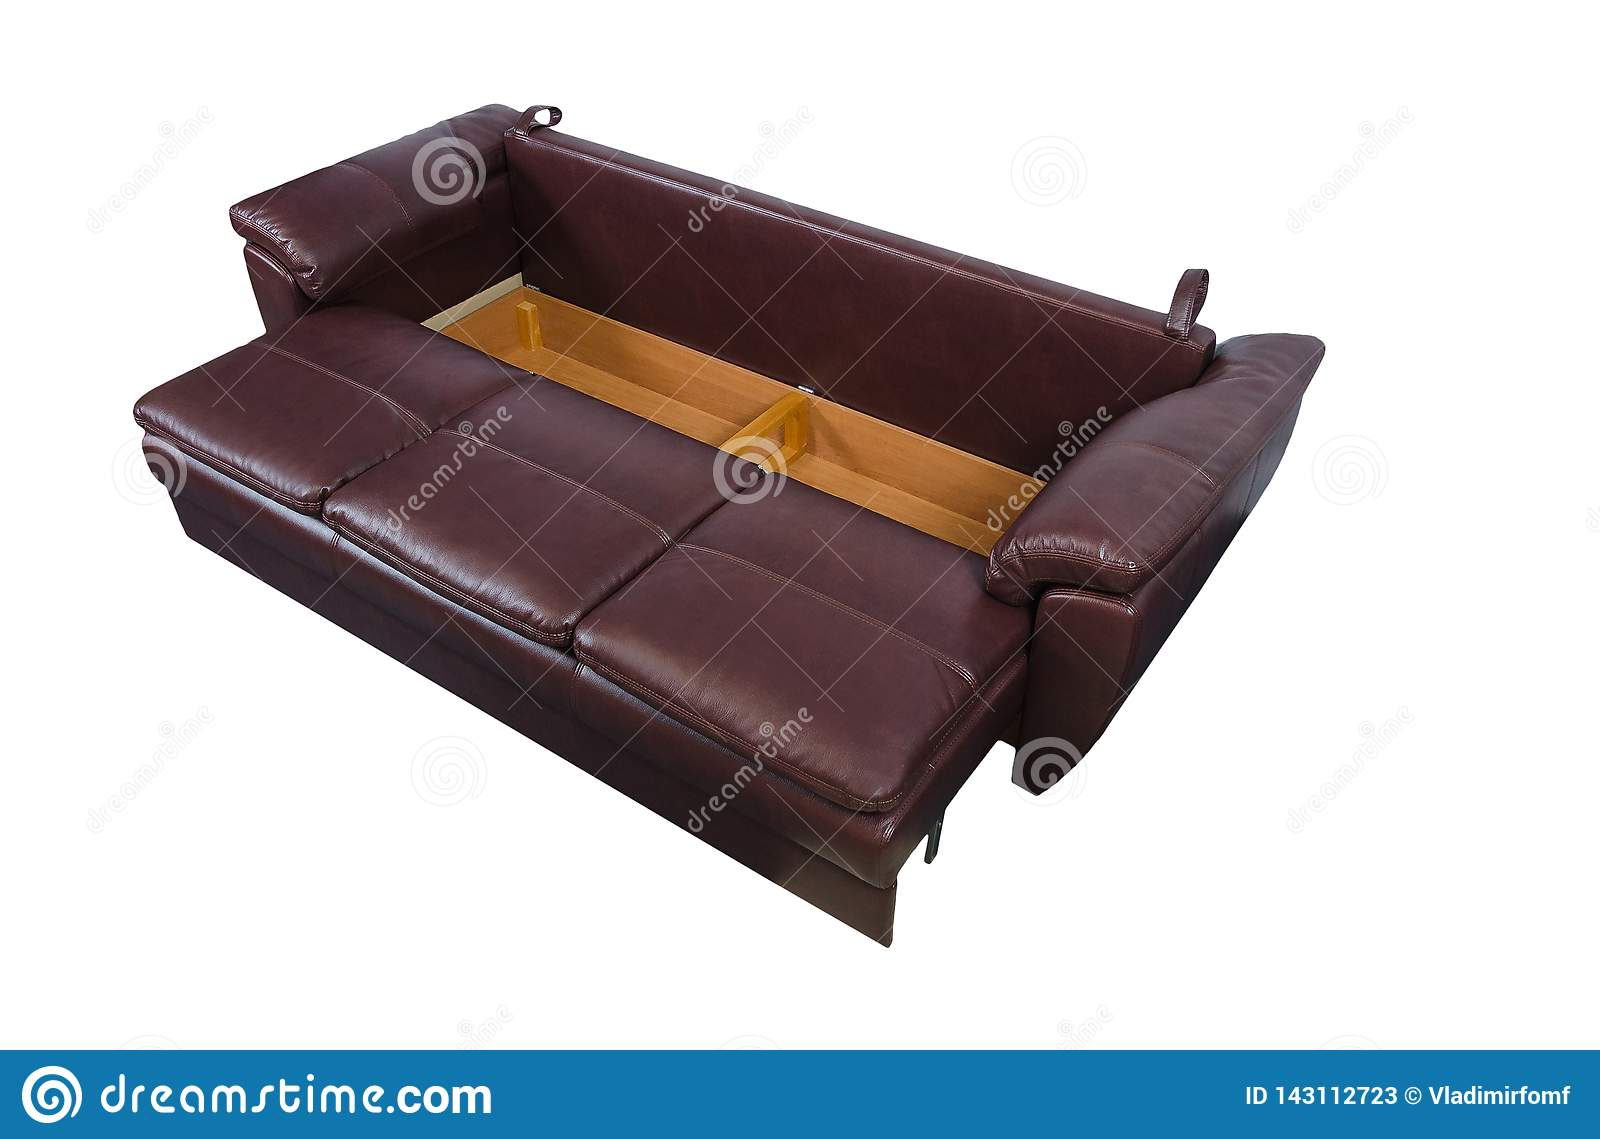 Epanded brown leather sofa isolated on white with clipping path